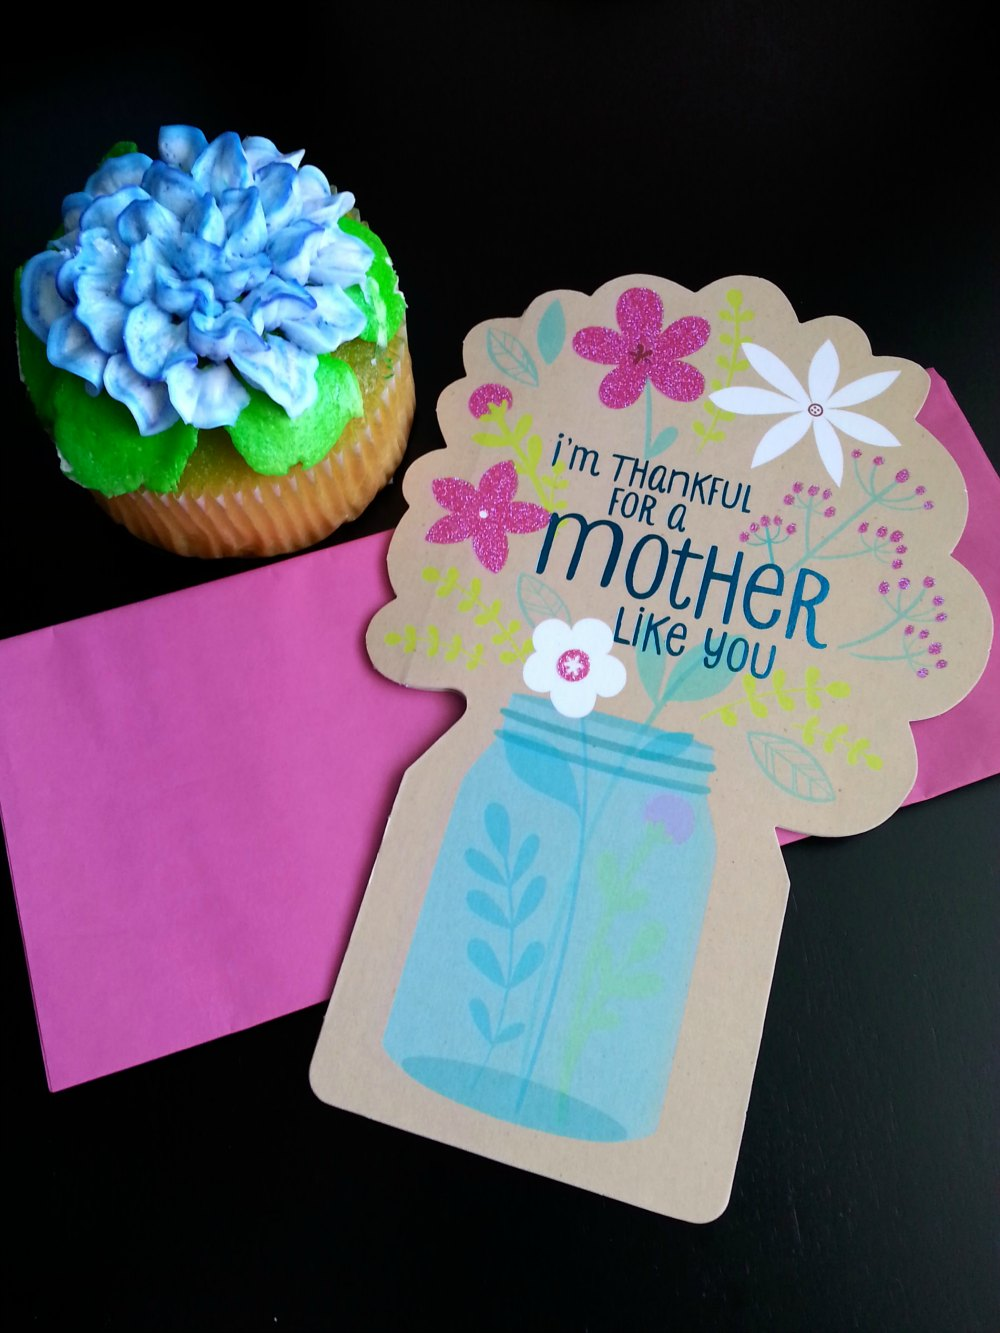 American Greetings Mother's Day Card #BestMomsDayEver @Walmart #ad